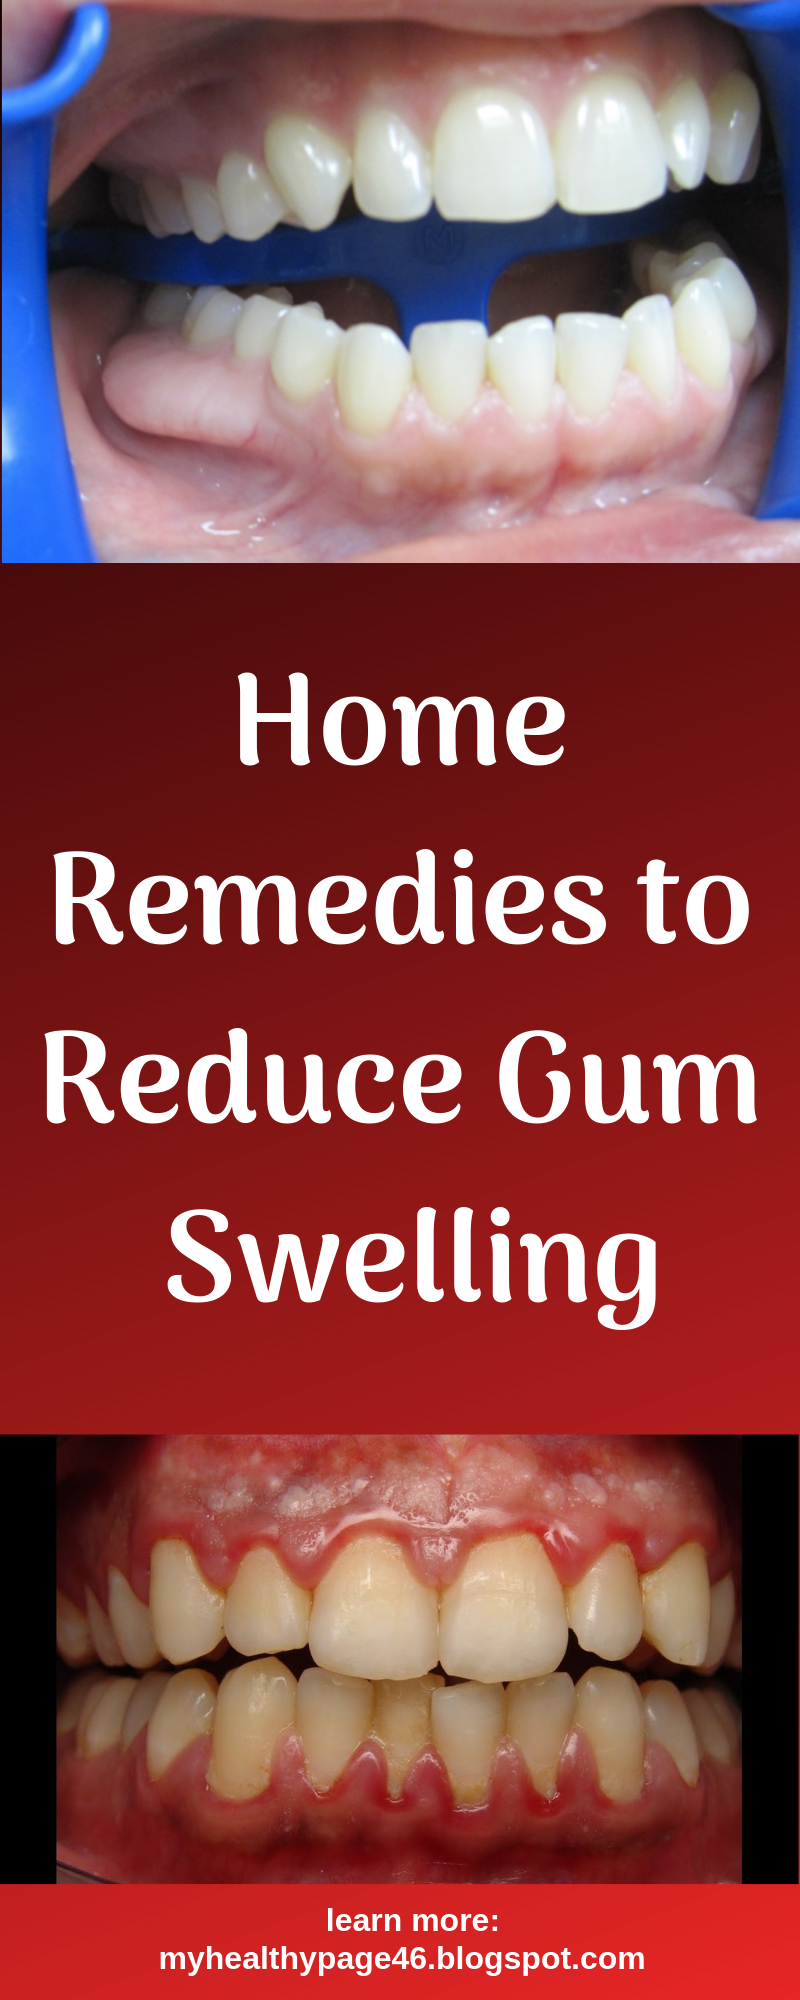 Home Remedies To Reduce Gum Swelling Swollen Gum Gingivitis Remedies Swollen Gums Remedy